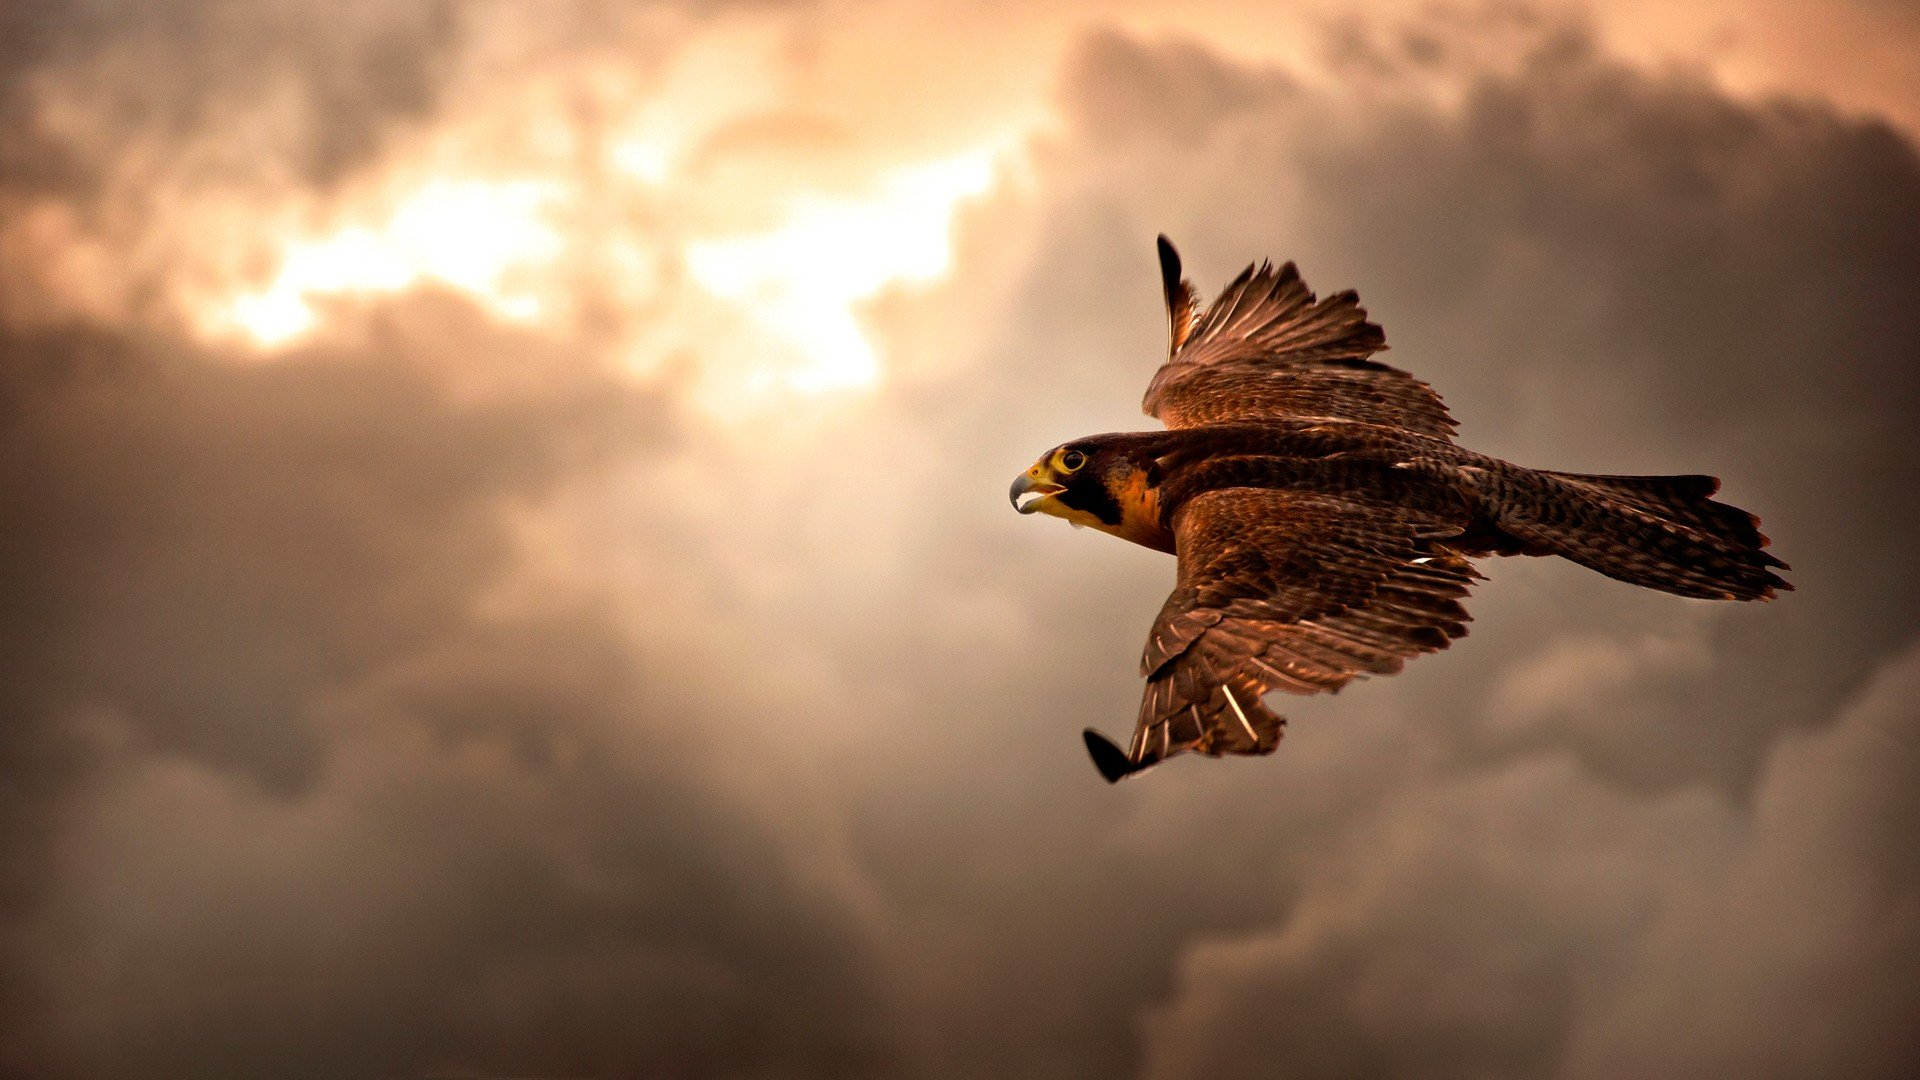 clouds nature birds animals brown interfacelift flight skyscapes hawks